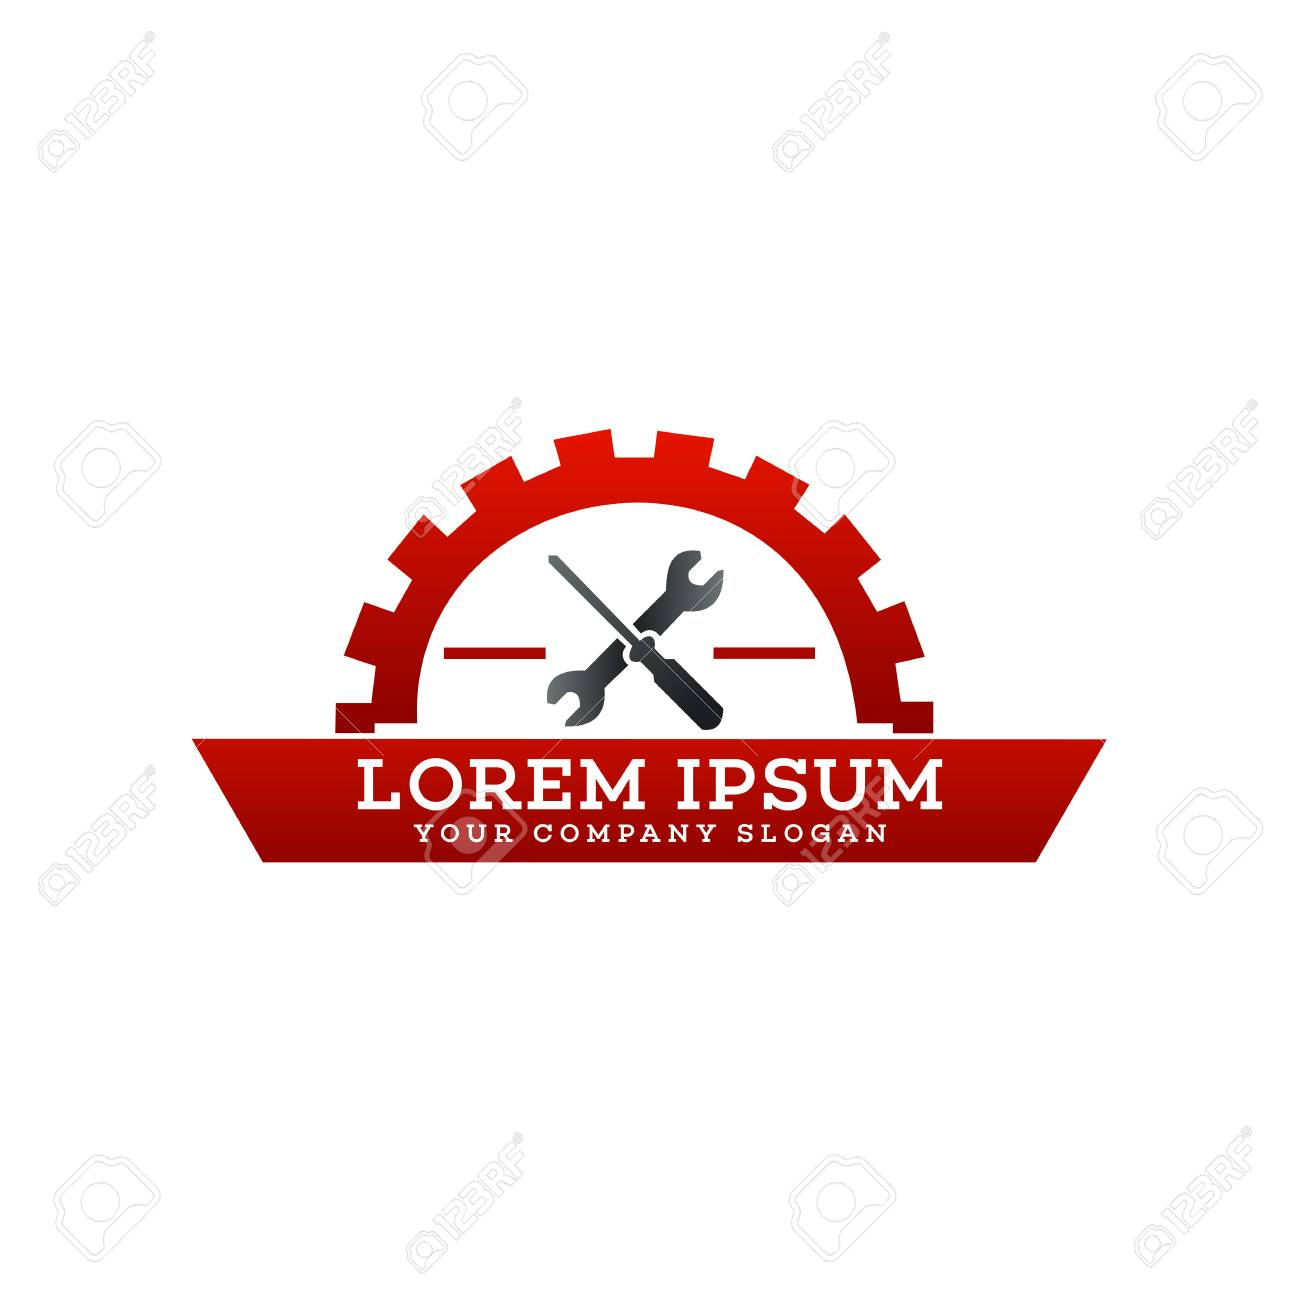 Garage Design Template Automotive Repair Logo Garage Logo Design Concept Template